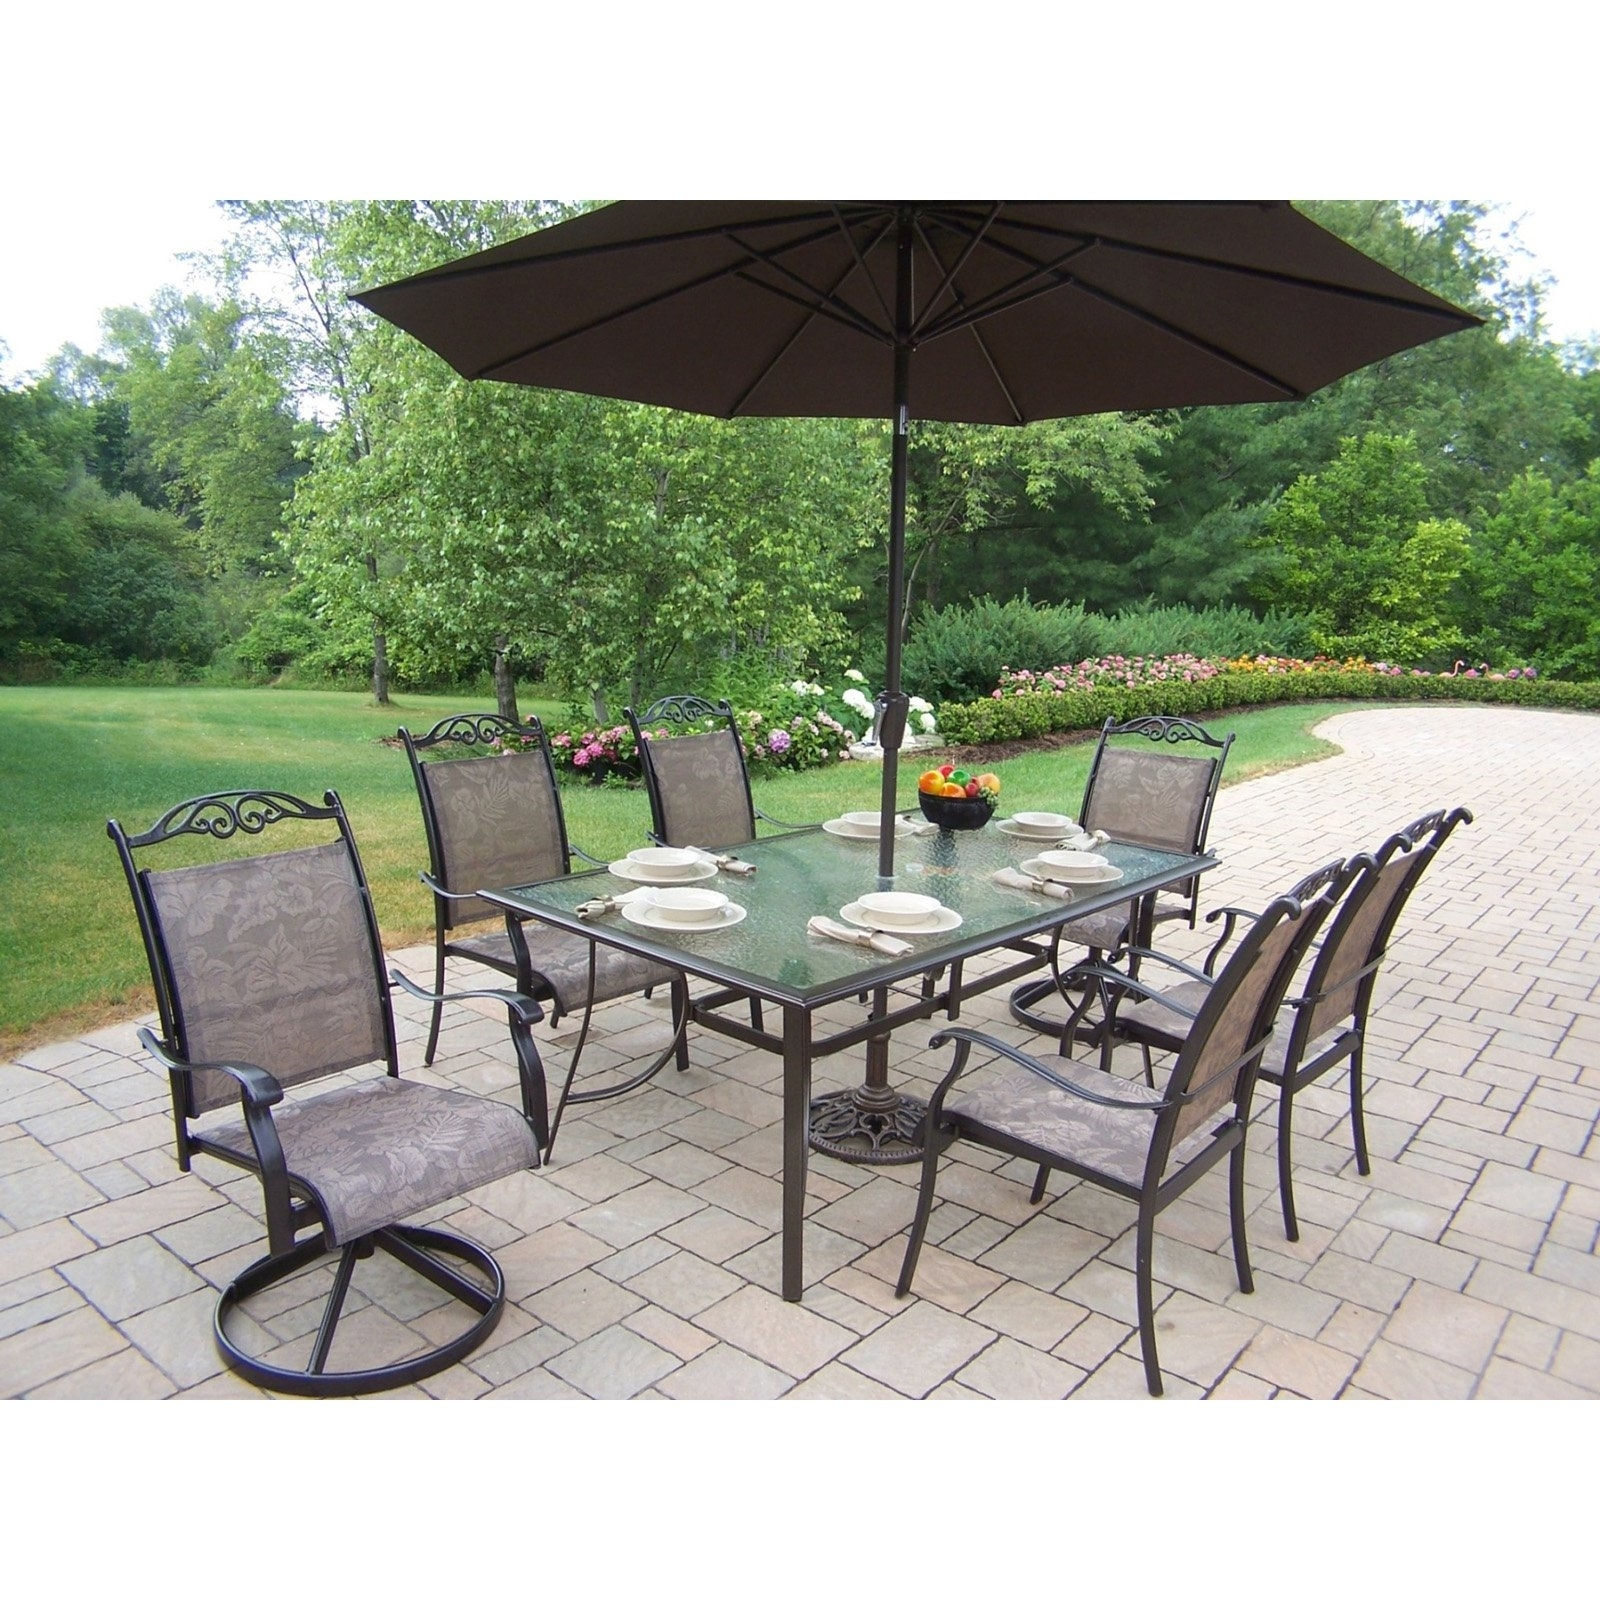 Well Liked Ultimate Patio Table Umbrella About Small Patio Table With Umbrella Within Patio Tables With Umbrella Hole (View 19 of 20)